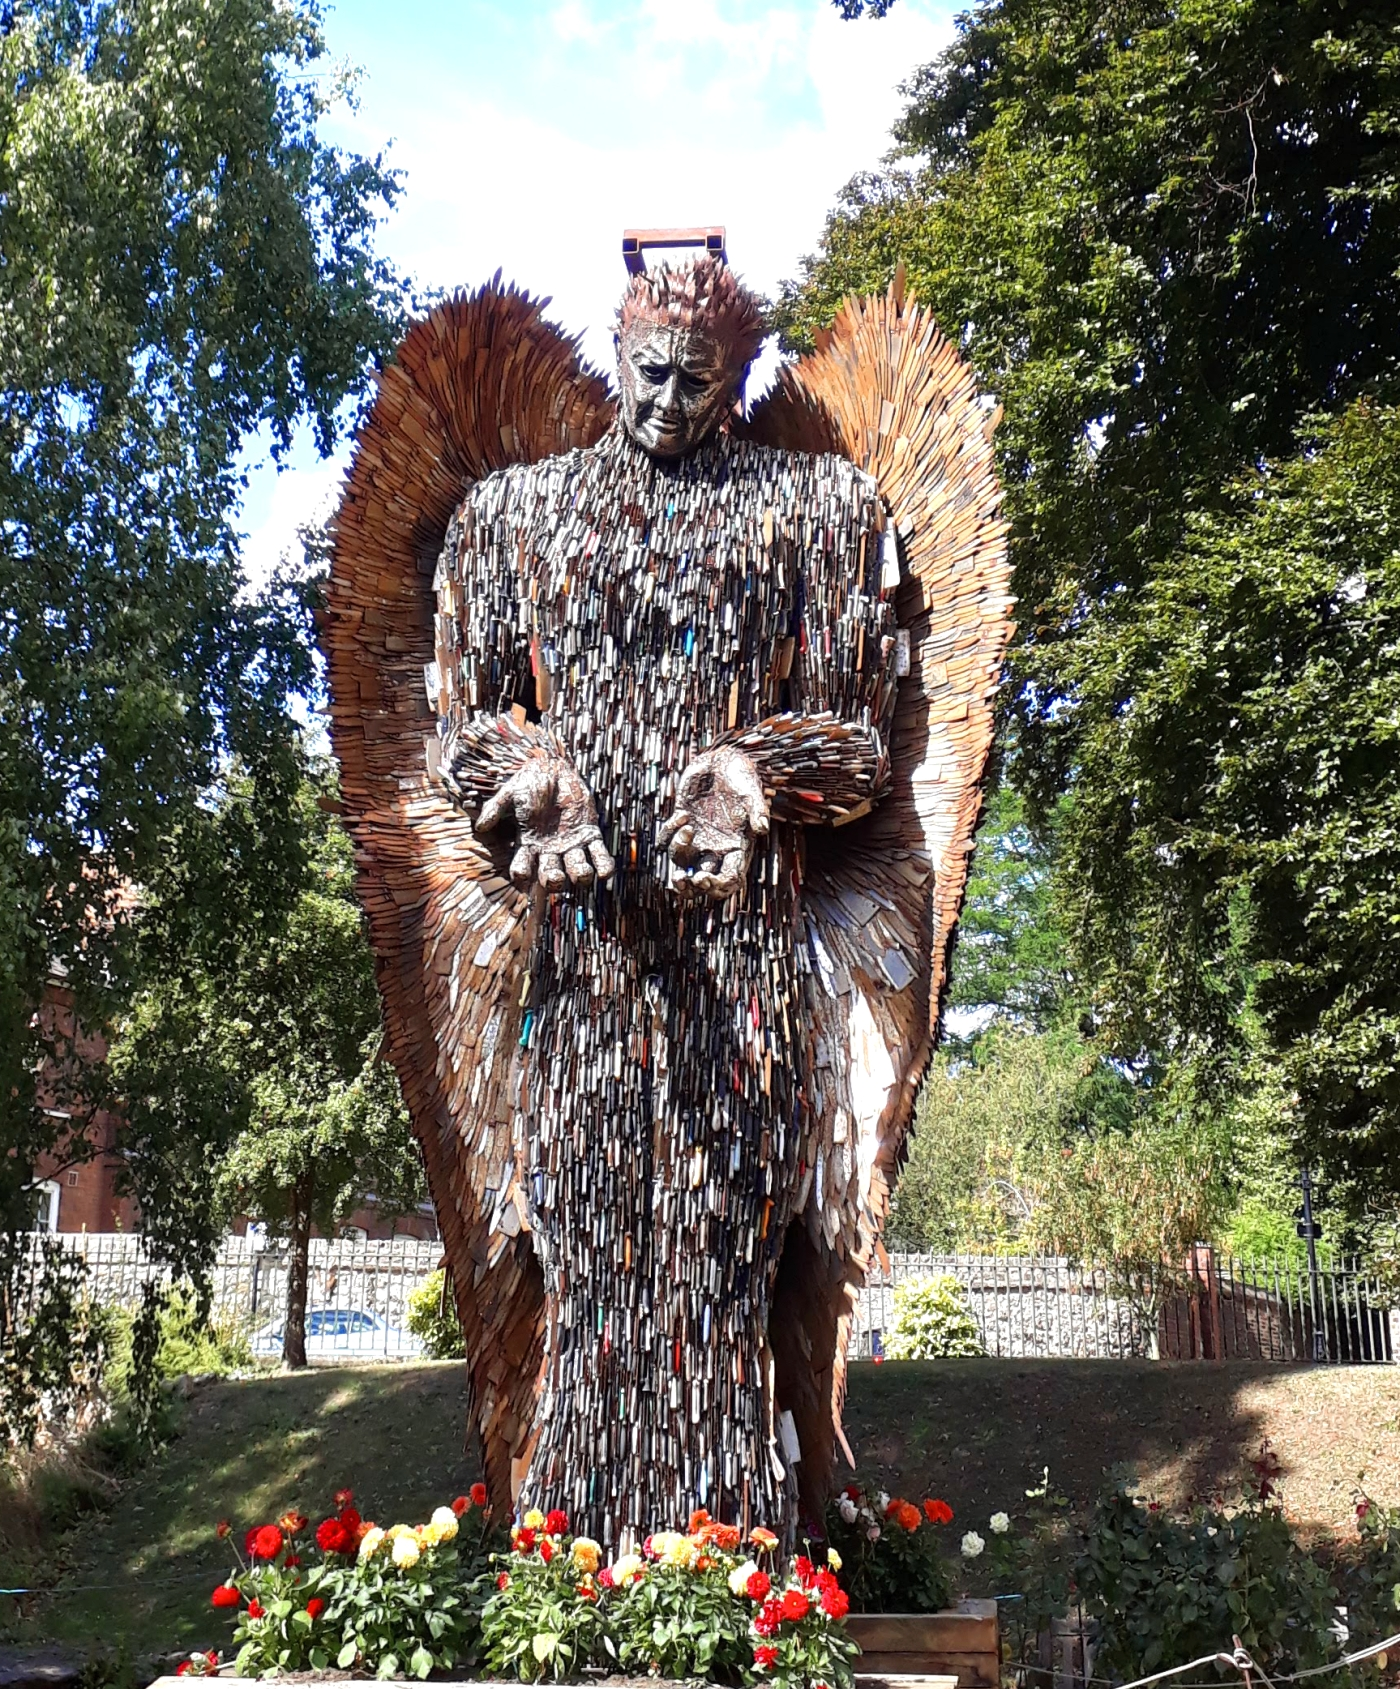 The knife angel standing among trees